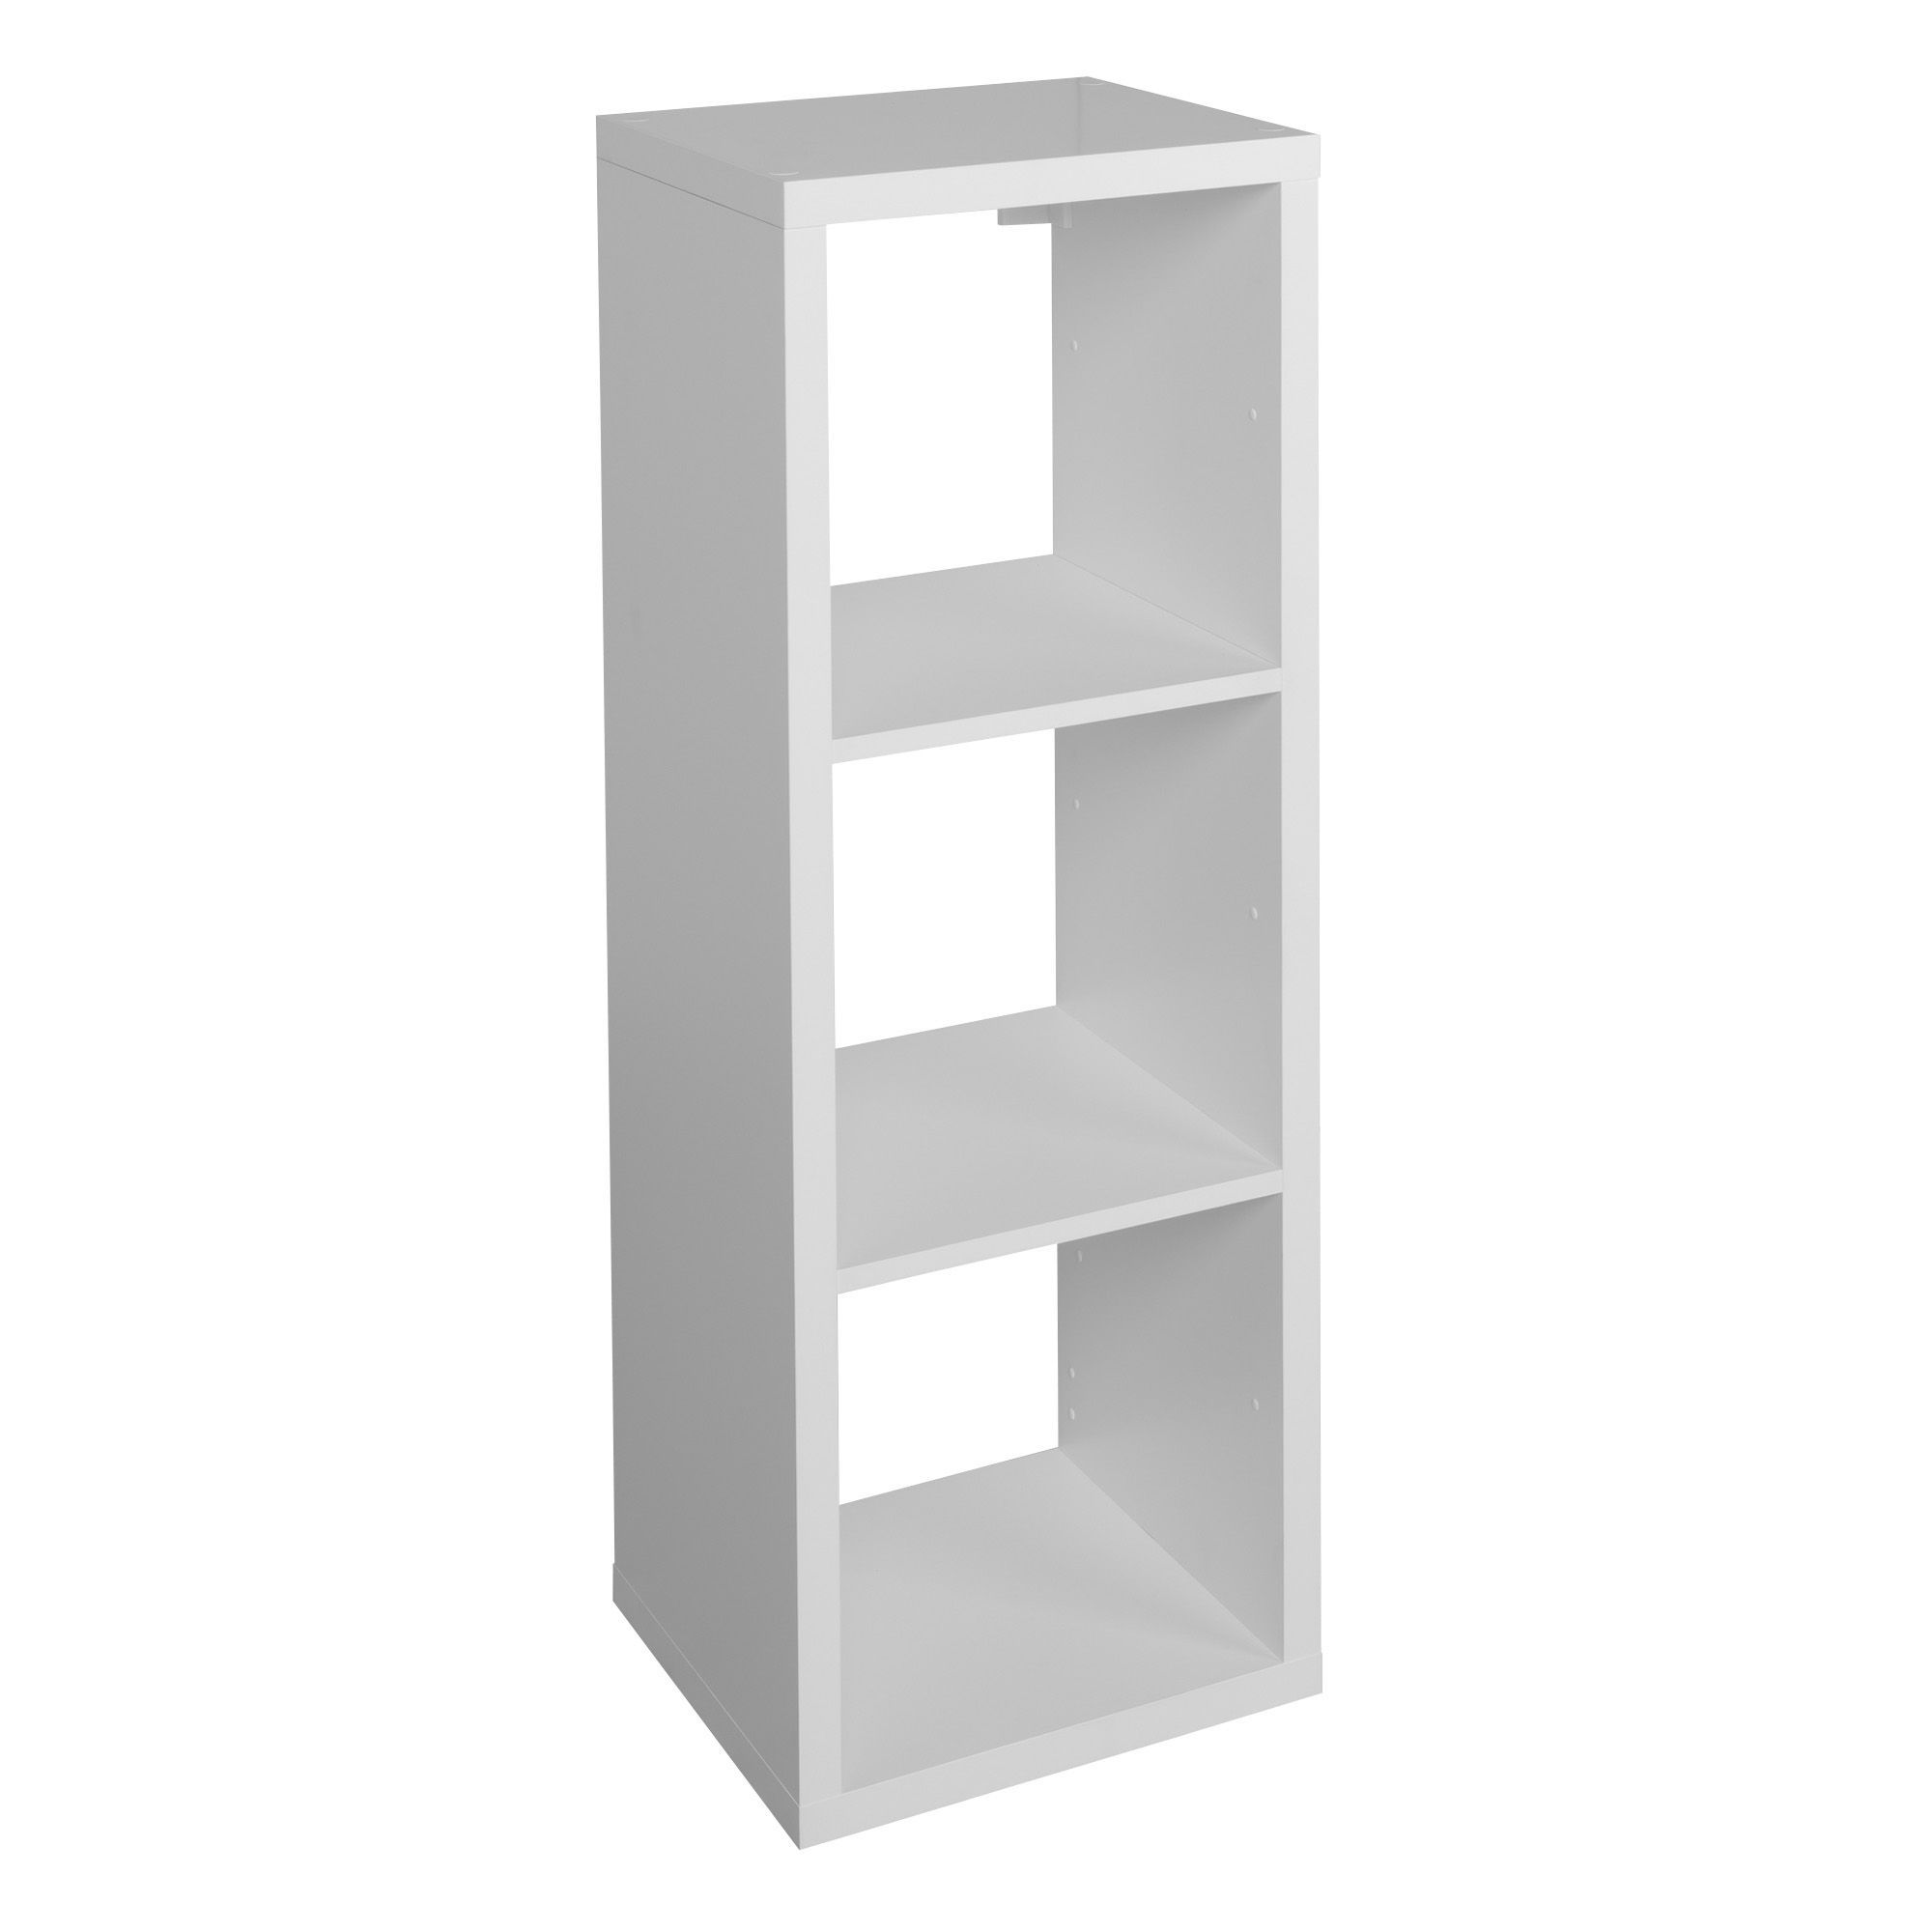 Form Mixxit White 3 Cube Shelving Unit H 1082mm W 390mm Rooms